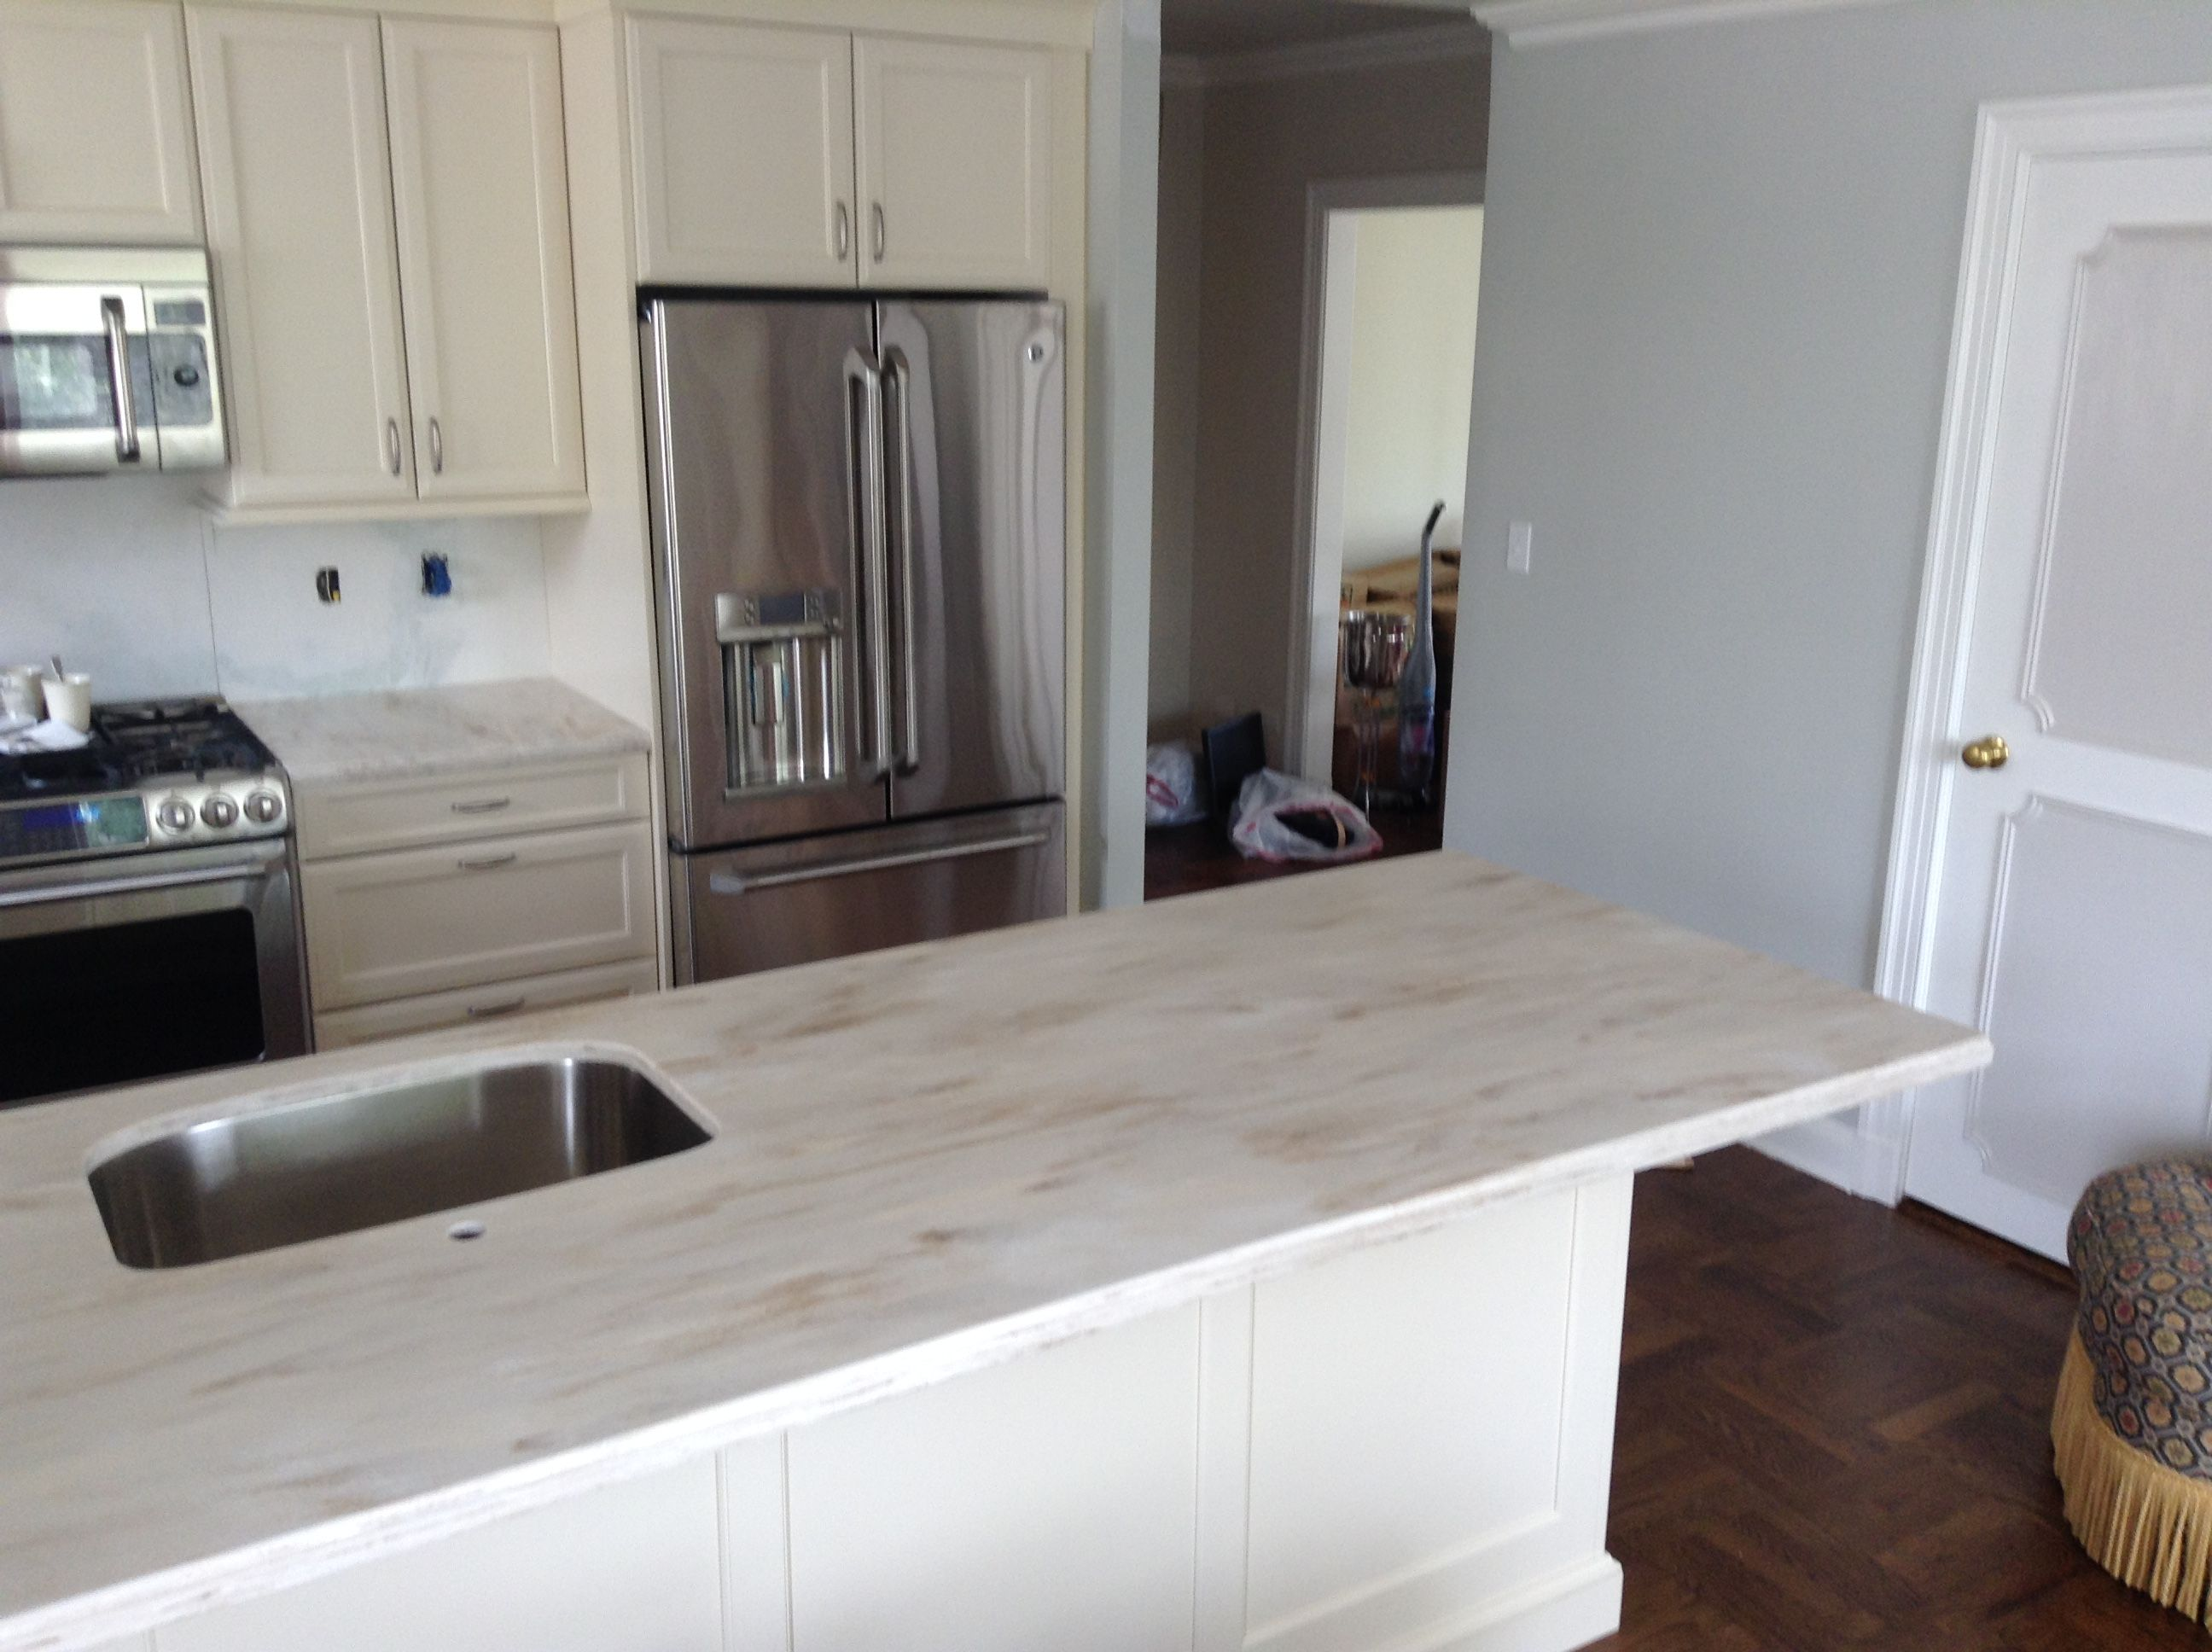 how fx sale refinish a bar home crema panel depot natural door install lowes the formica countertop tops to laminate stone diy repair on hd b homes sheets mascrello little countertops wilsonart in and more ledger corian vencil